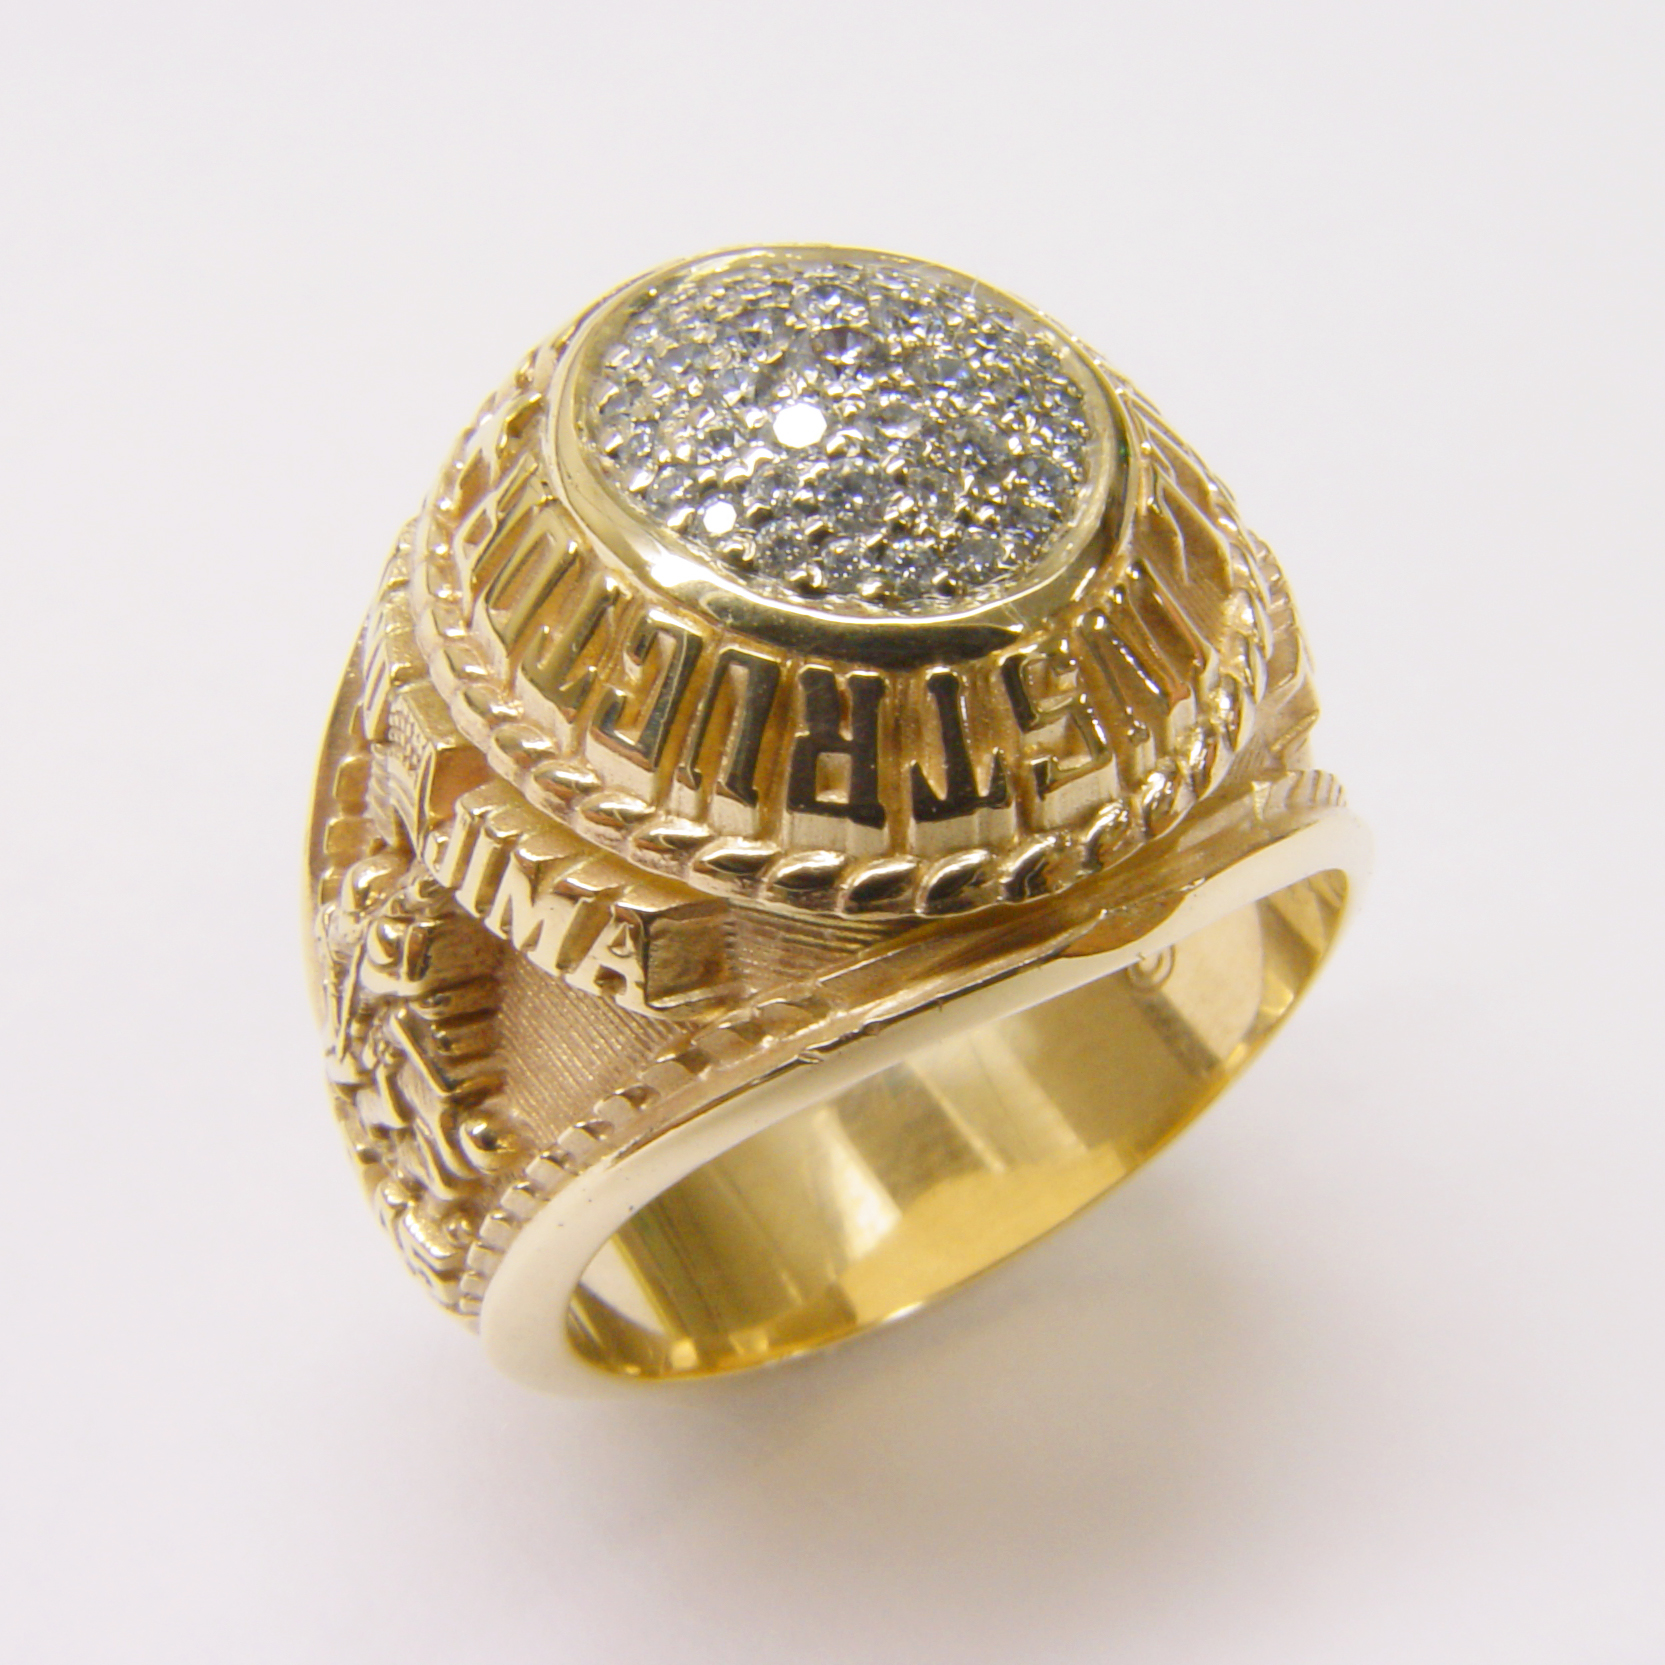 18kt Yellow Gold and Diamond Ring by RGC